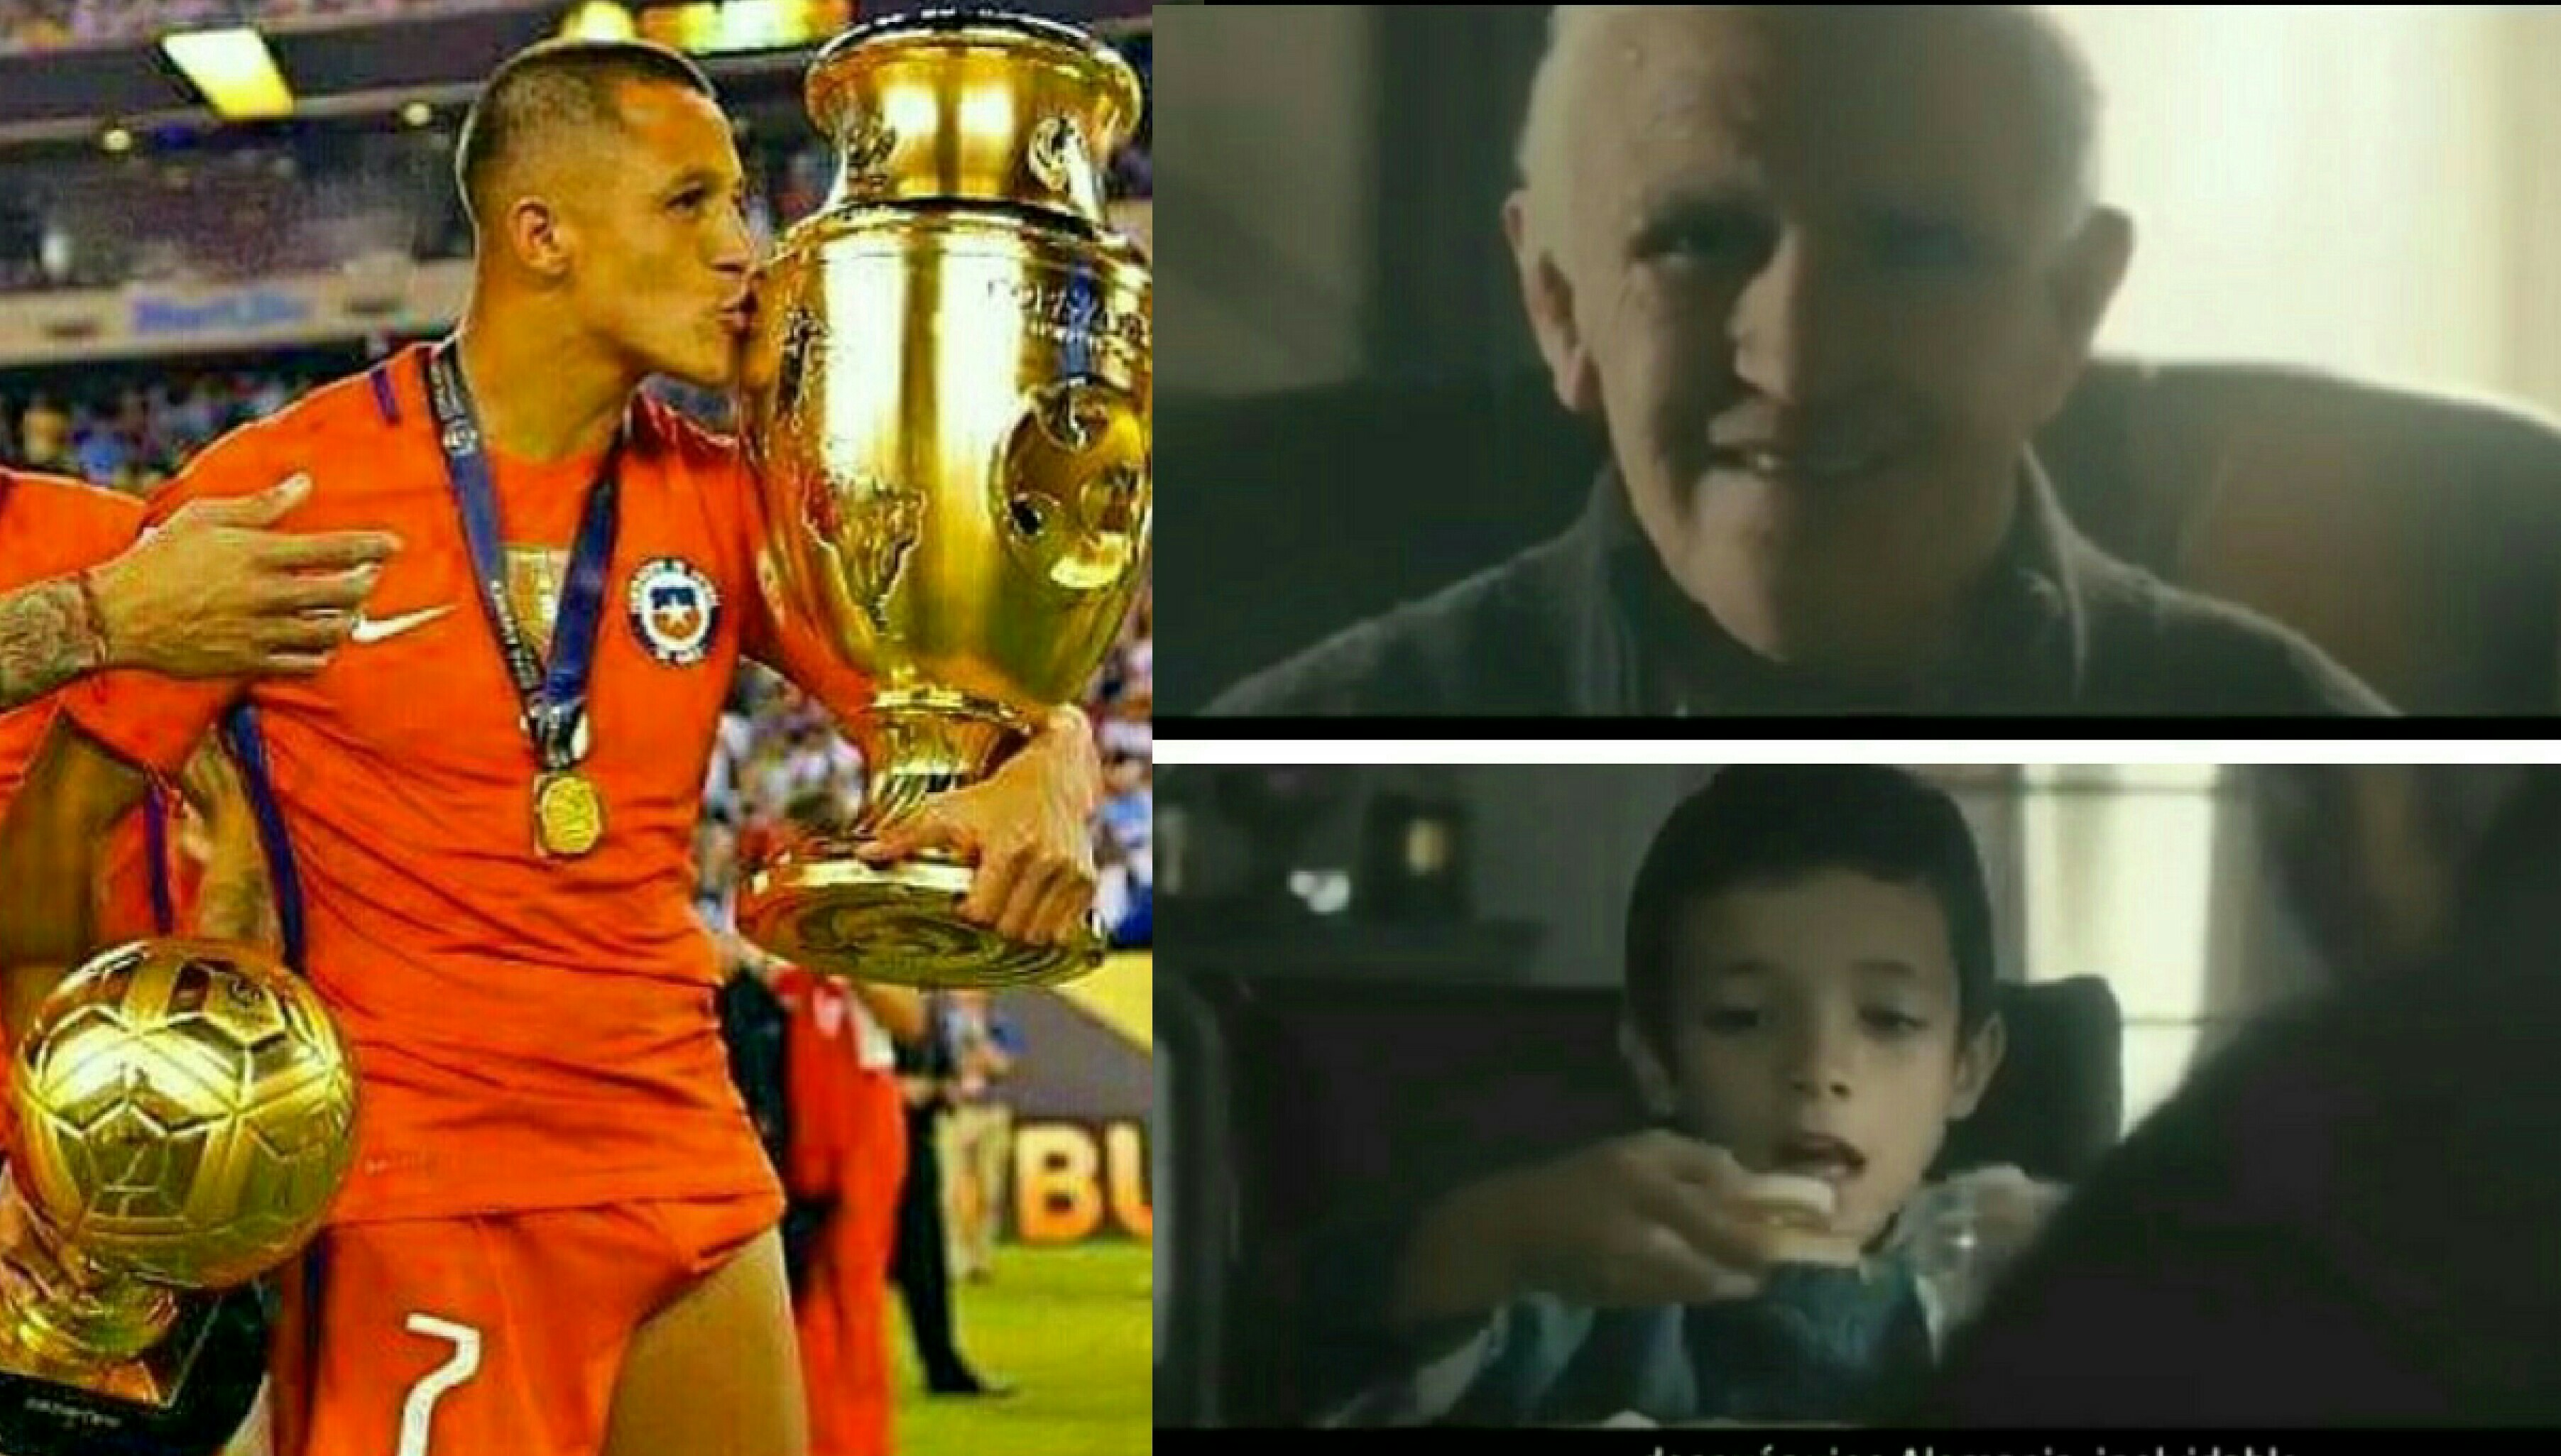 Sanchez Stars As Old Man In Golden Generation Promo Ahead Chile's FIFA Confederations Cup Campaign